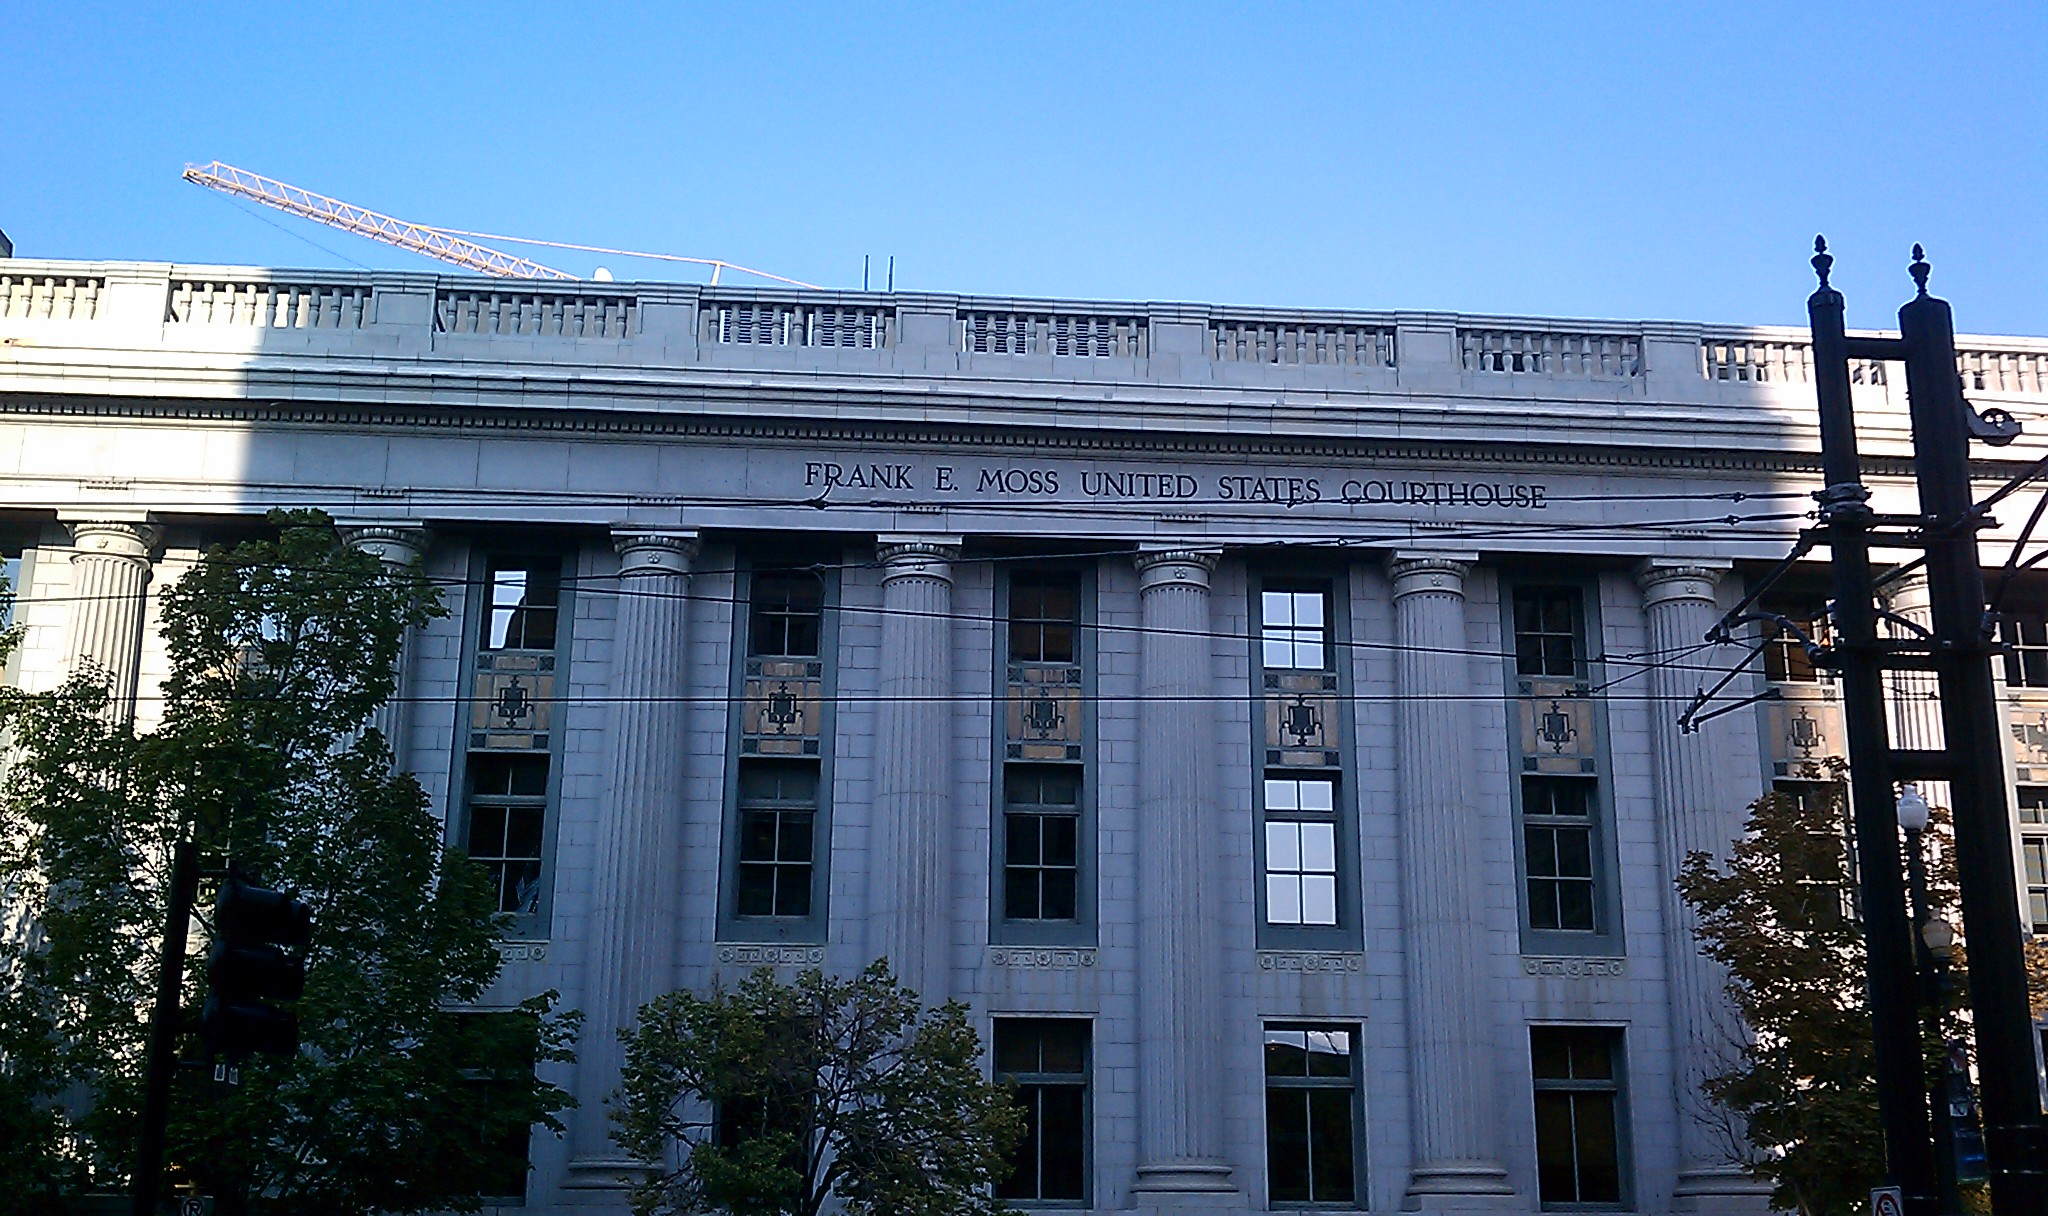 U.S. Court for the District of Utah in Salt Lake City